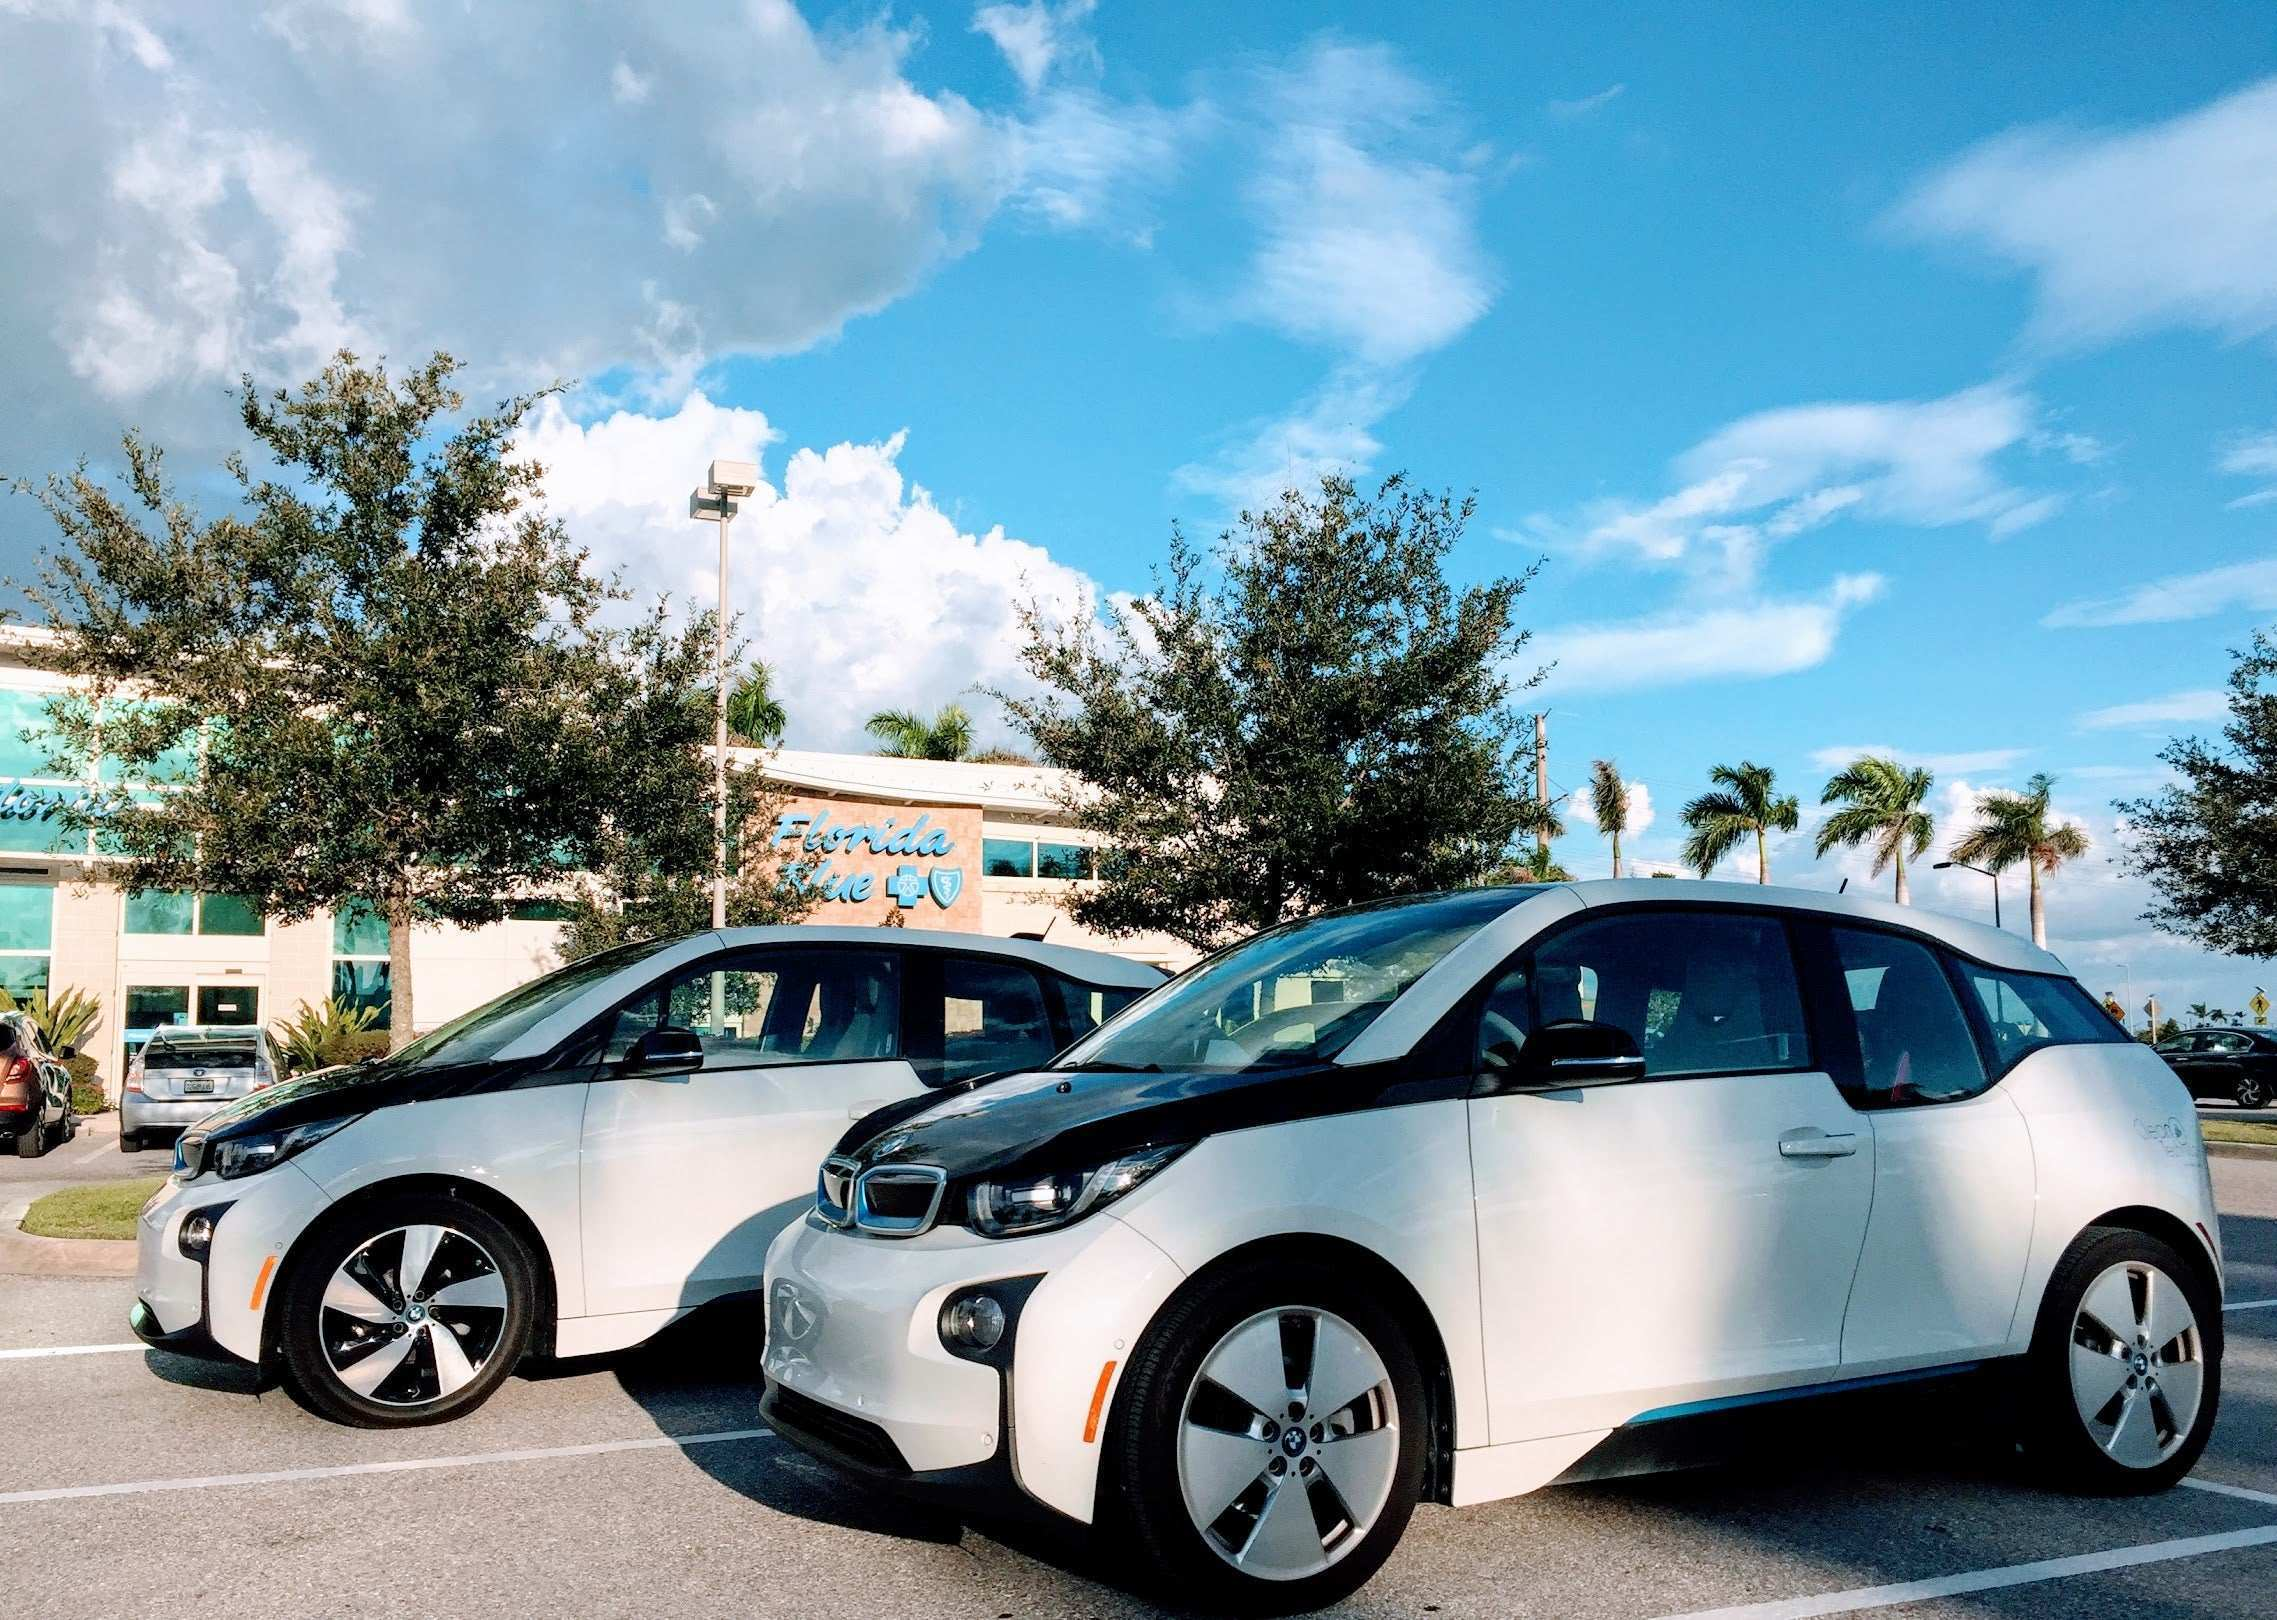 55 New Bmw I3 New Model 2020 Release Date And Concept